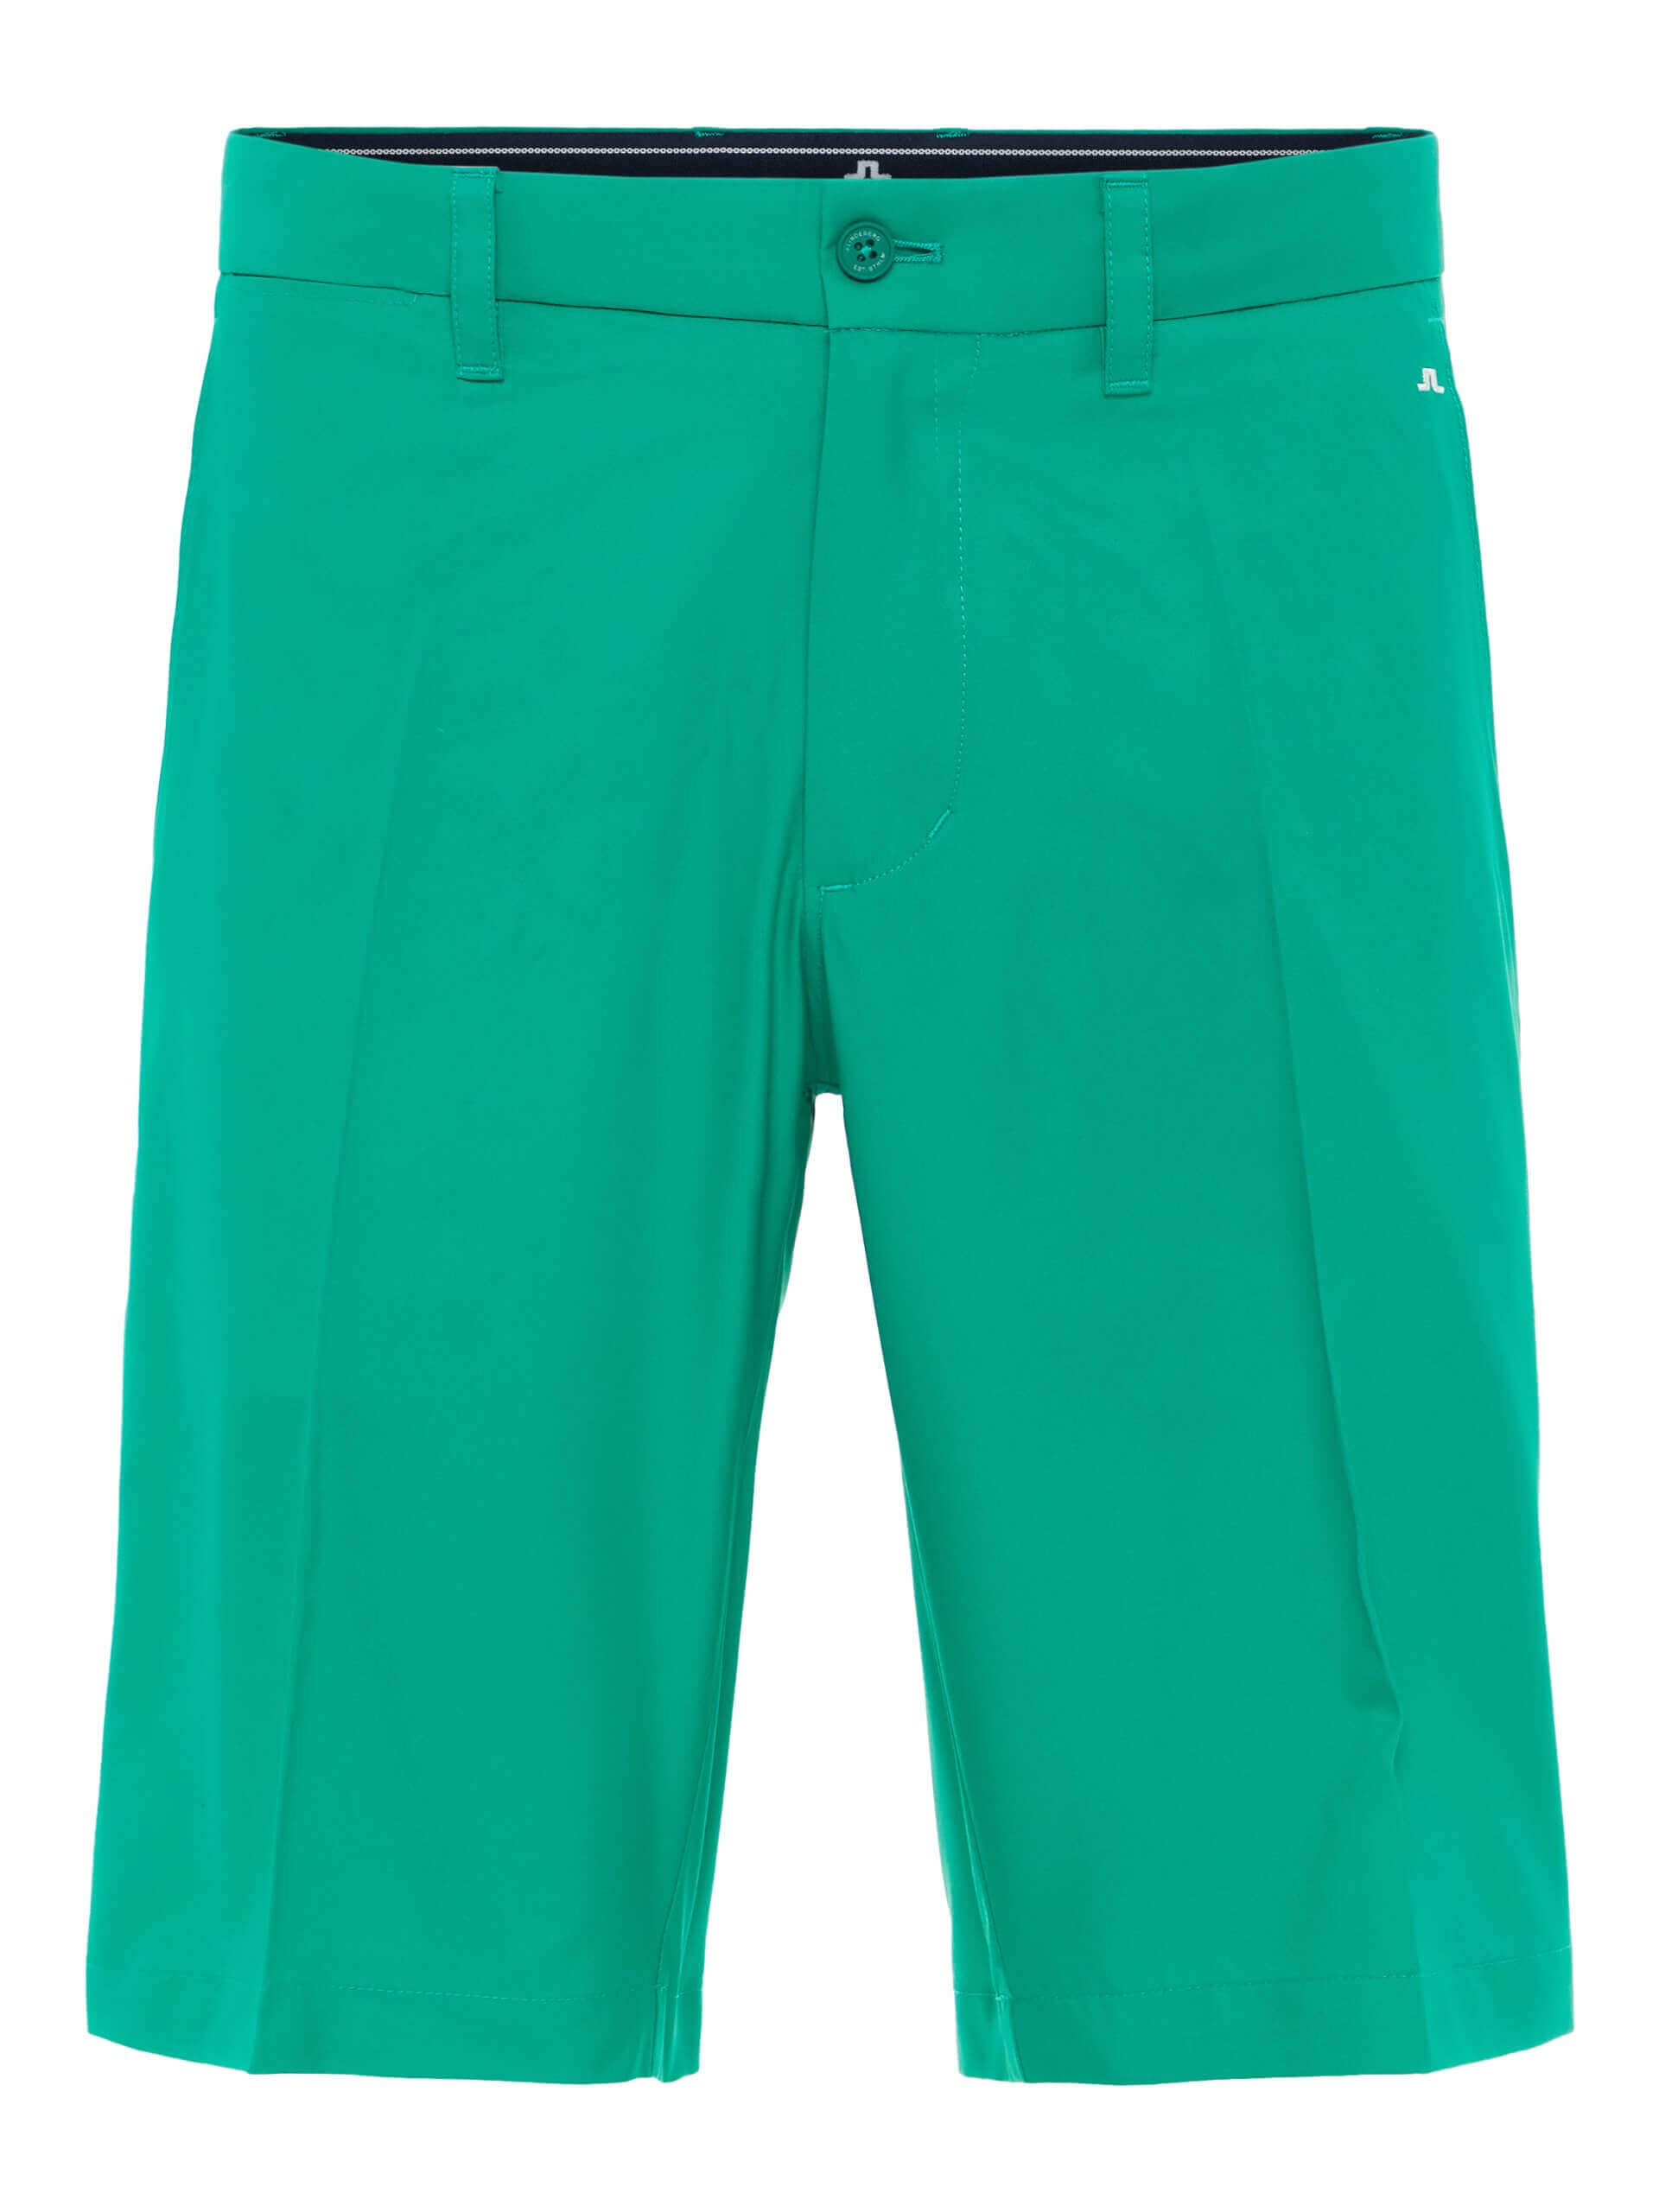 J.Lindeberg - Somle Light Short in golf green